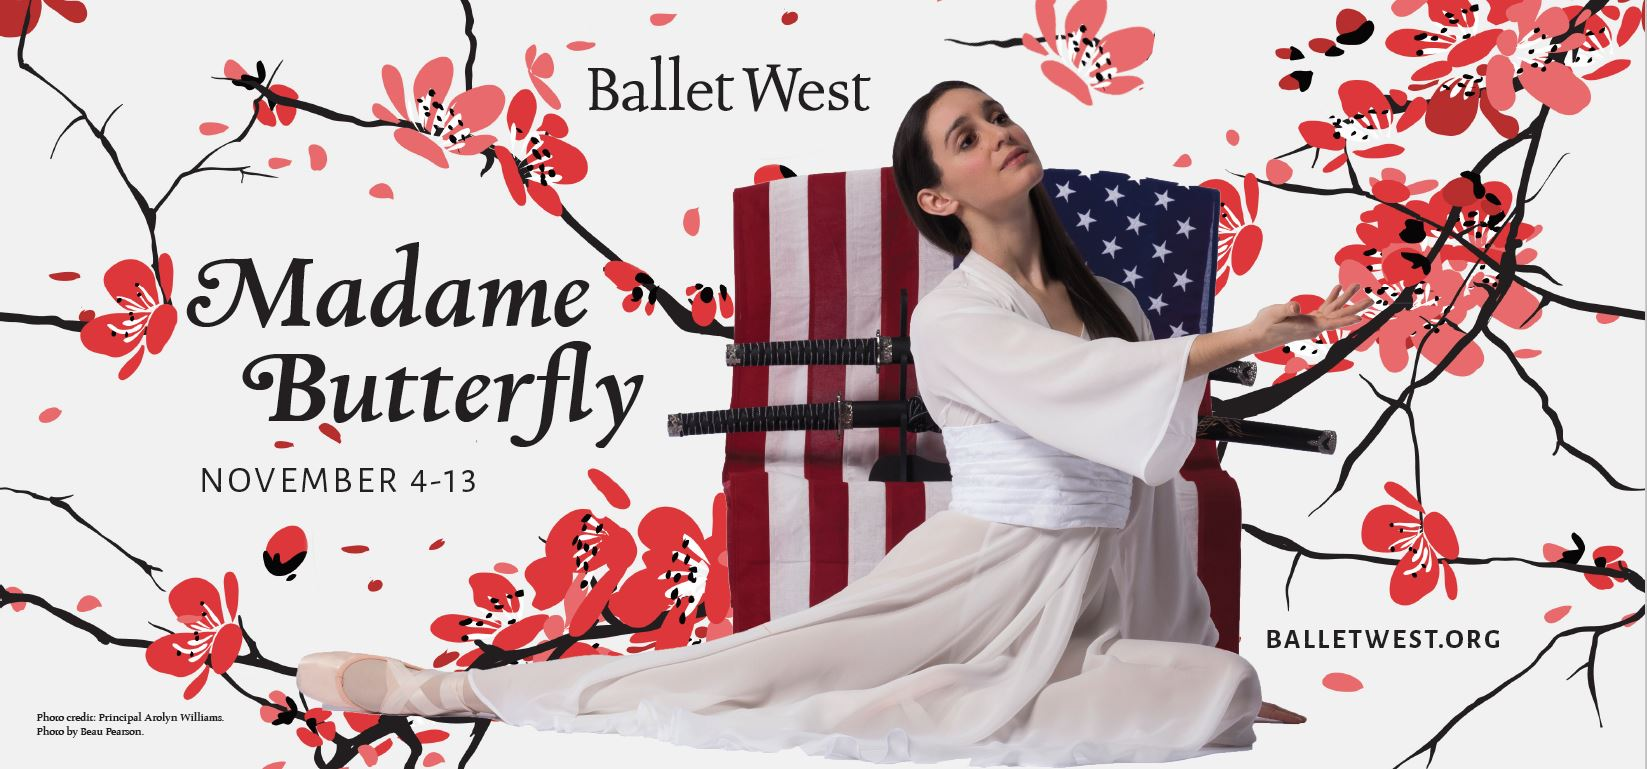 Madame Butterfly Synopsis : Ballet West